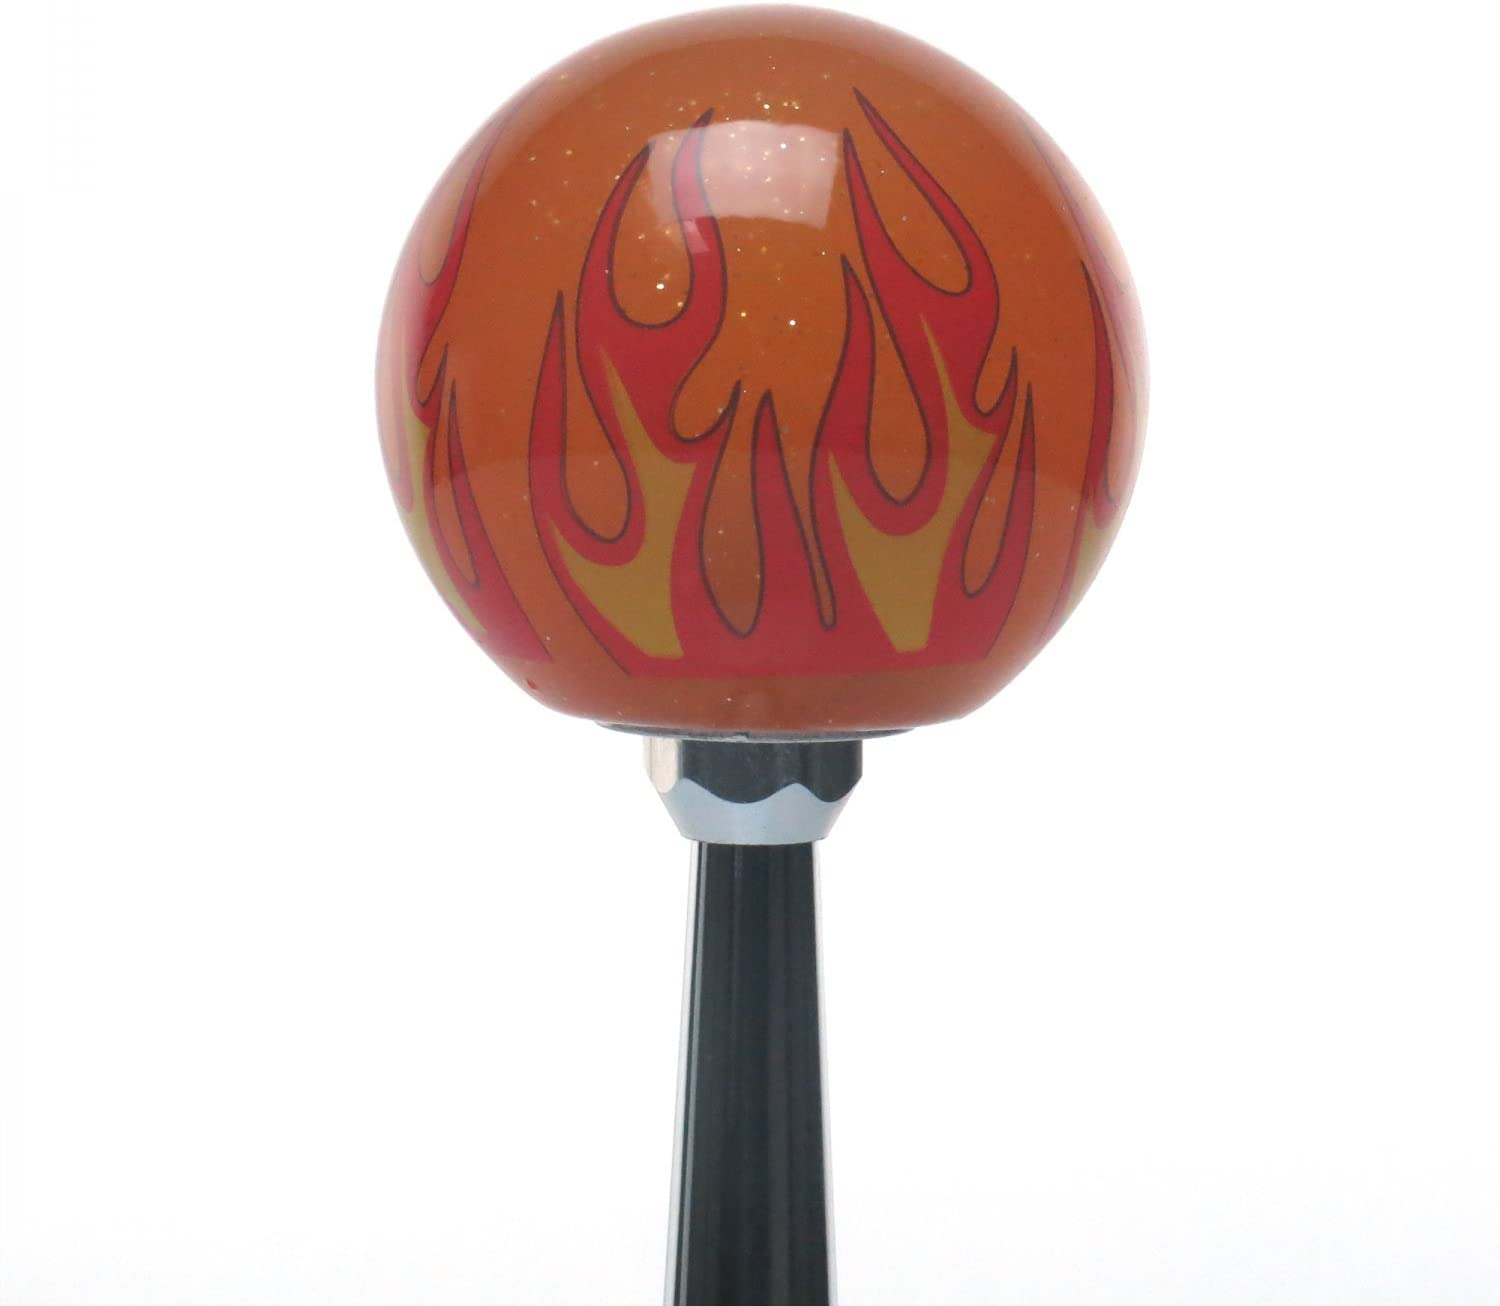 American Shifter 299129 Shift Knob Black Gemini Orange Flame Metal Flake with M16 x 1.5 Insert